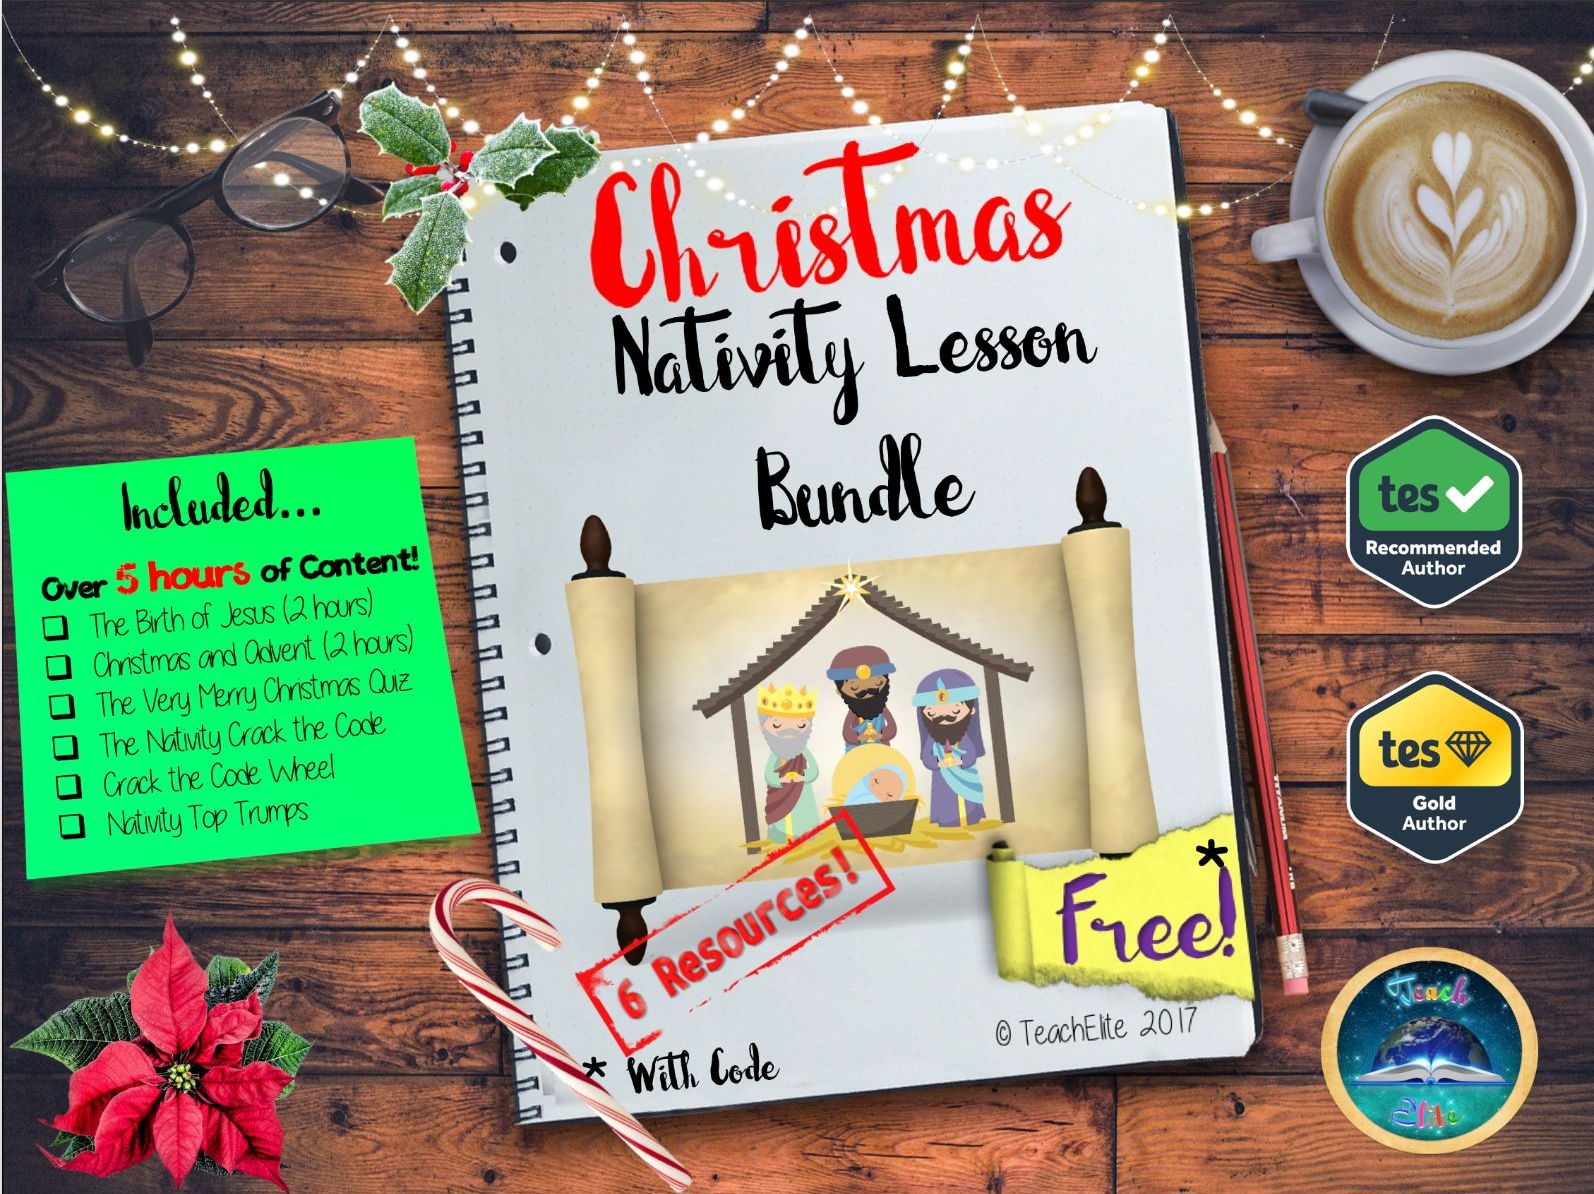 Christmas: Nativity Lesson Bundle